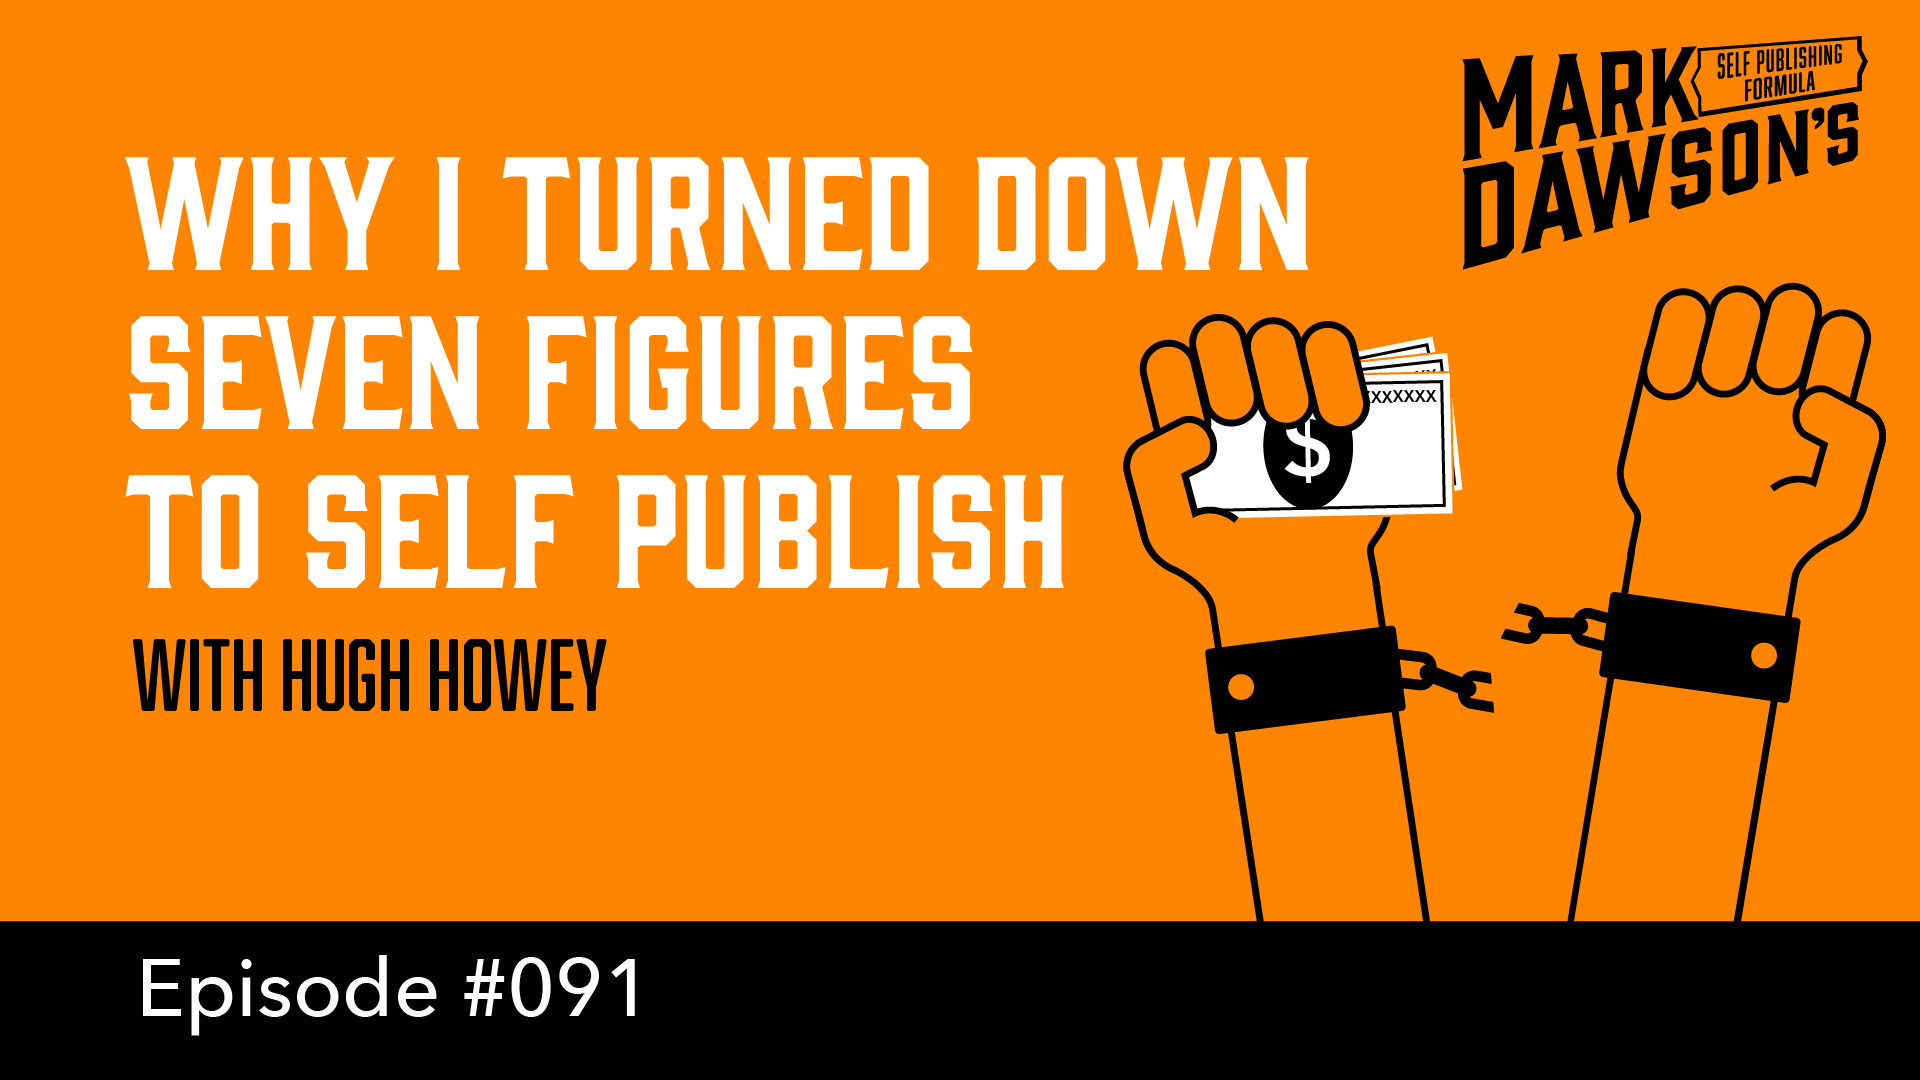 Why I Turned Down Seven Figures To Self Publish - with Hugh Howey